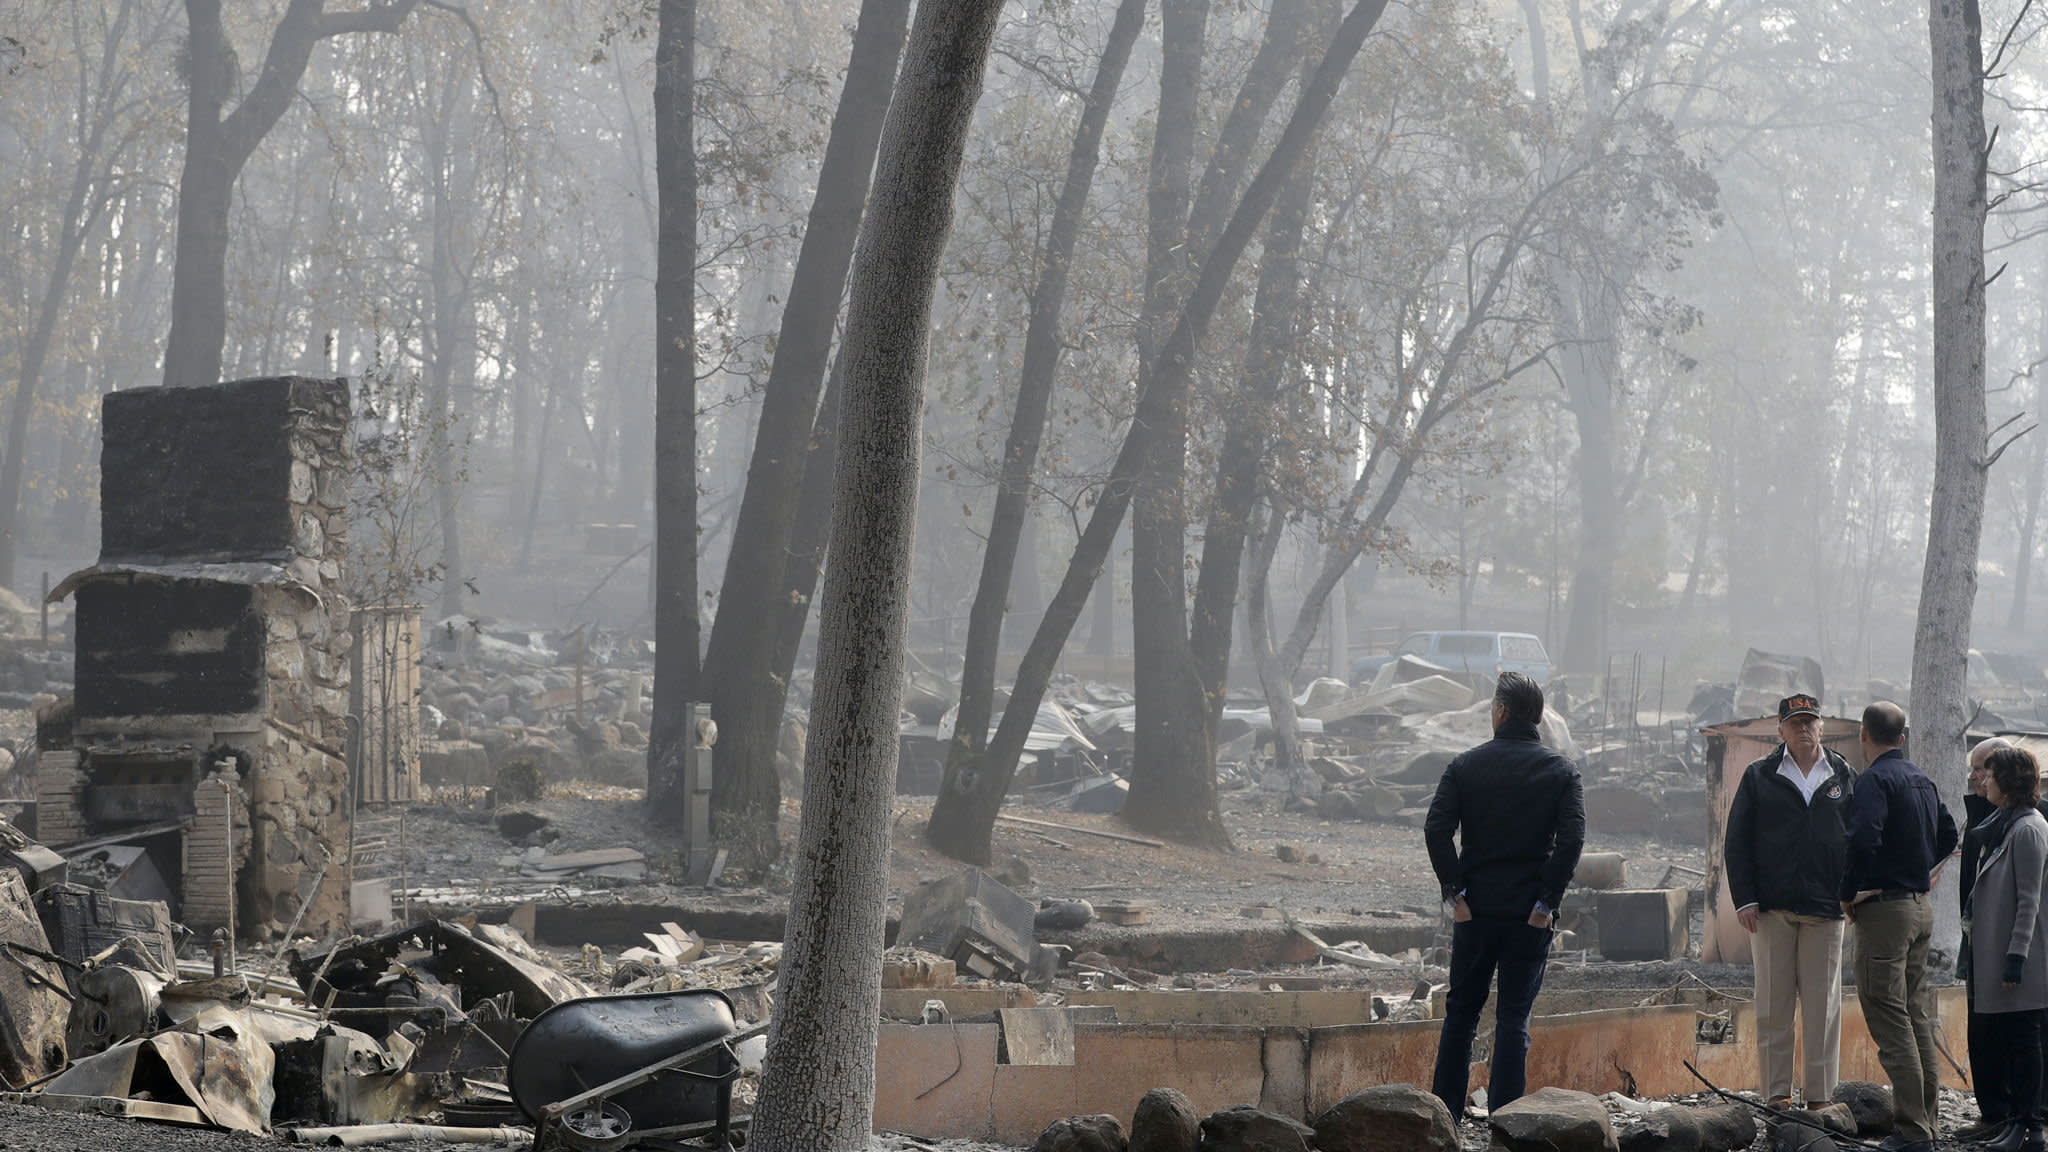 Insurers grapple with increasing wildfire risk